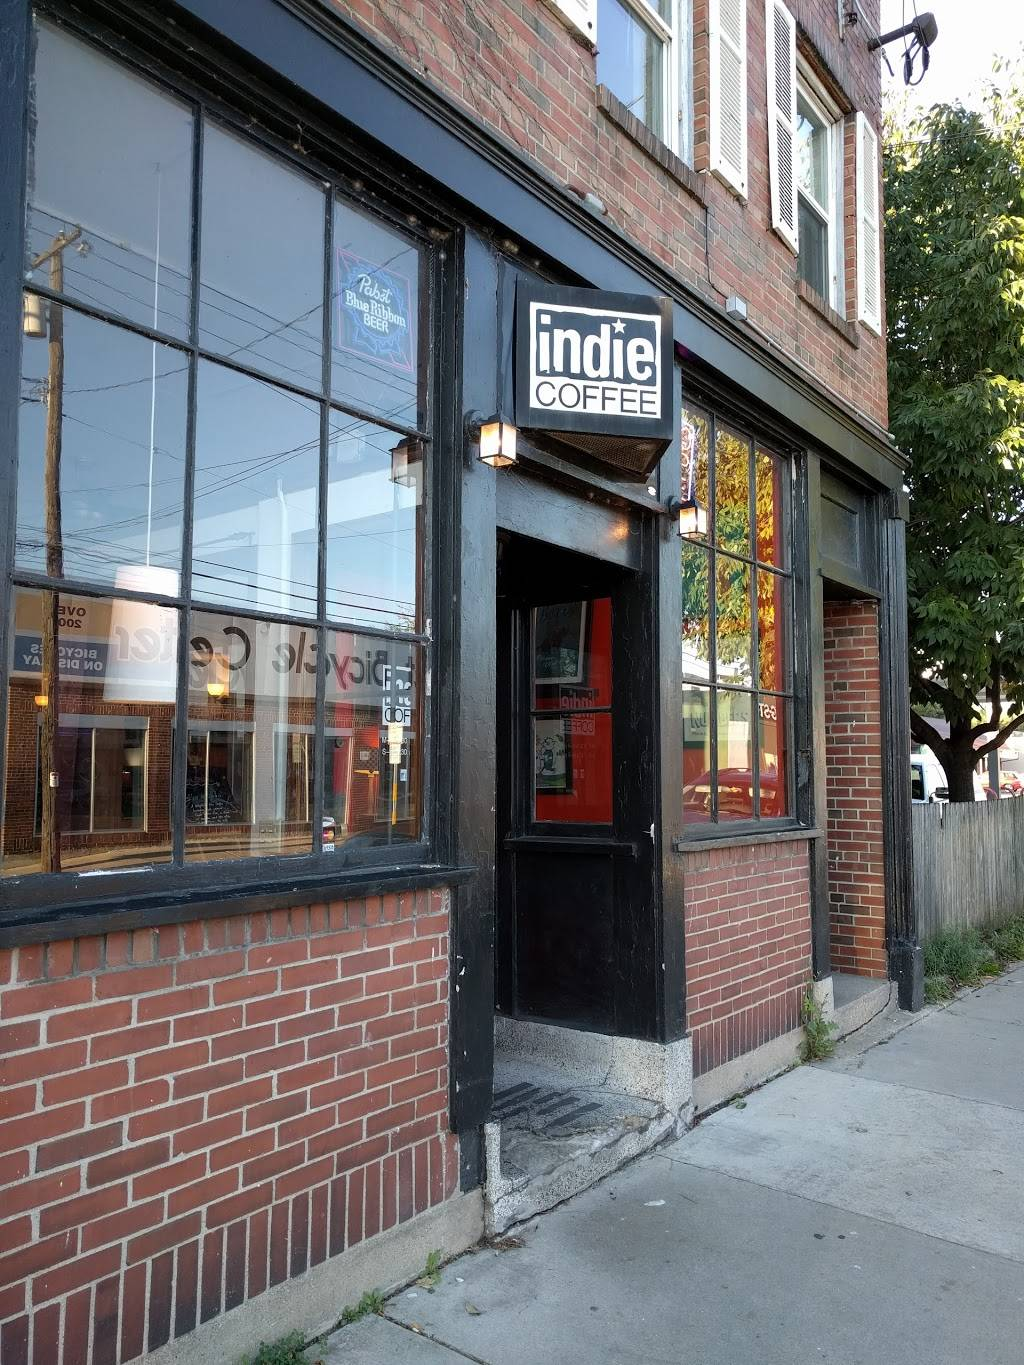 Indie Coffee | cafe | 1225 Regent St, Madison, WI 53715, USA | 6082599621 OR +1 608-259-9621